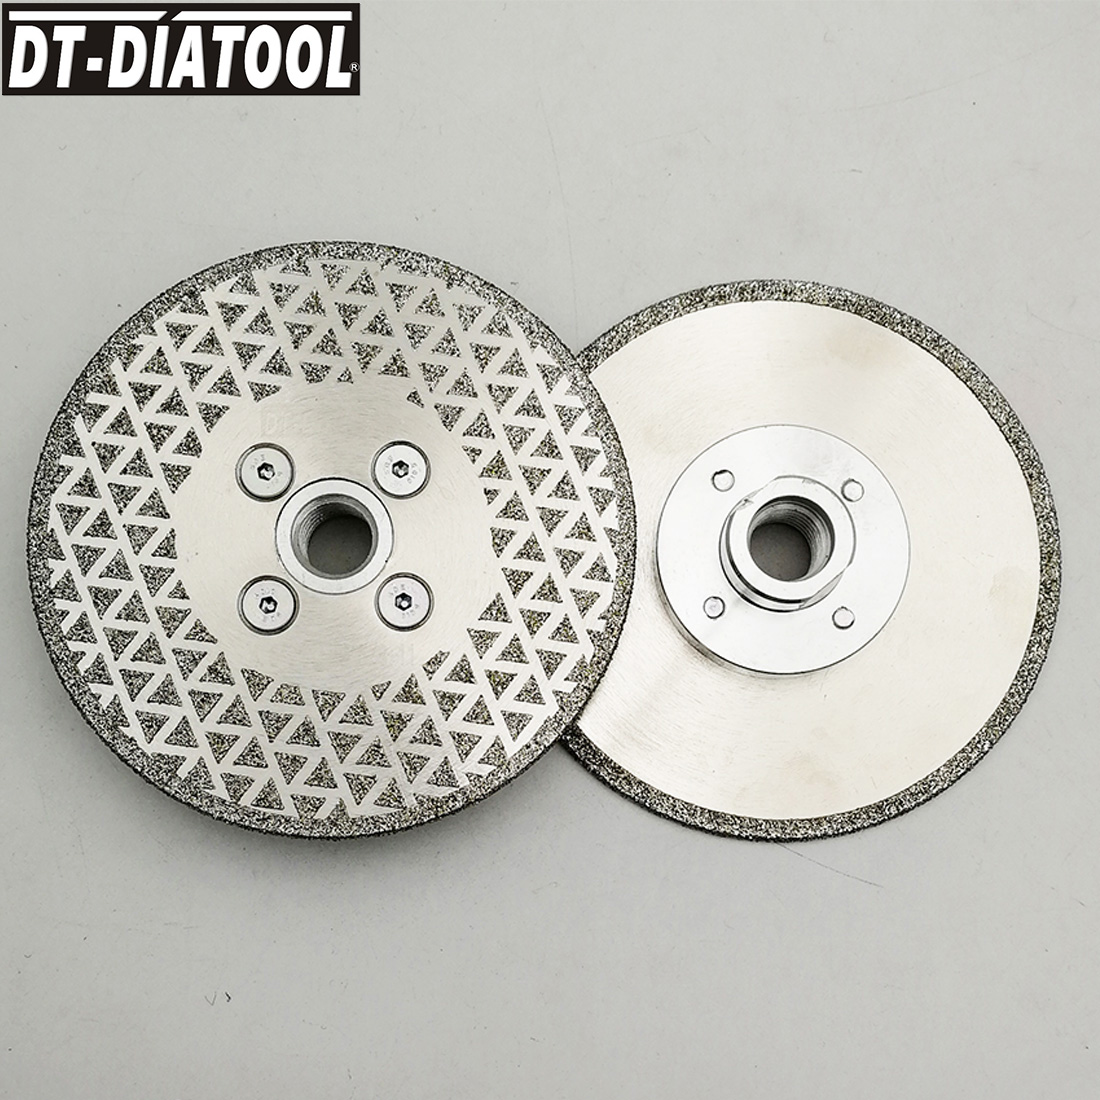 2pieces/set Electroplated  5/8-11 Thread Diamond Cutting Disc Grinding Wheel Saw Blades For Marble Stone